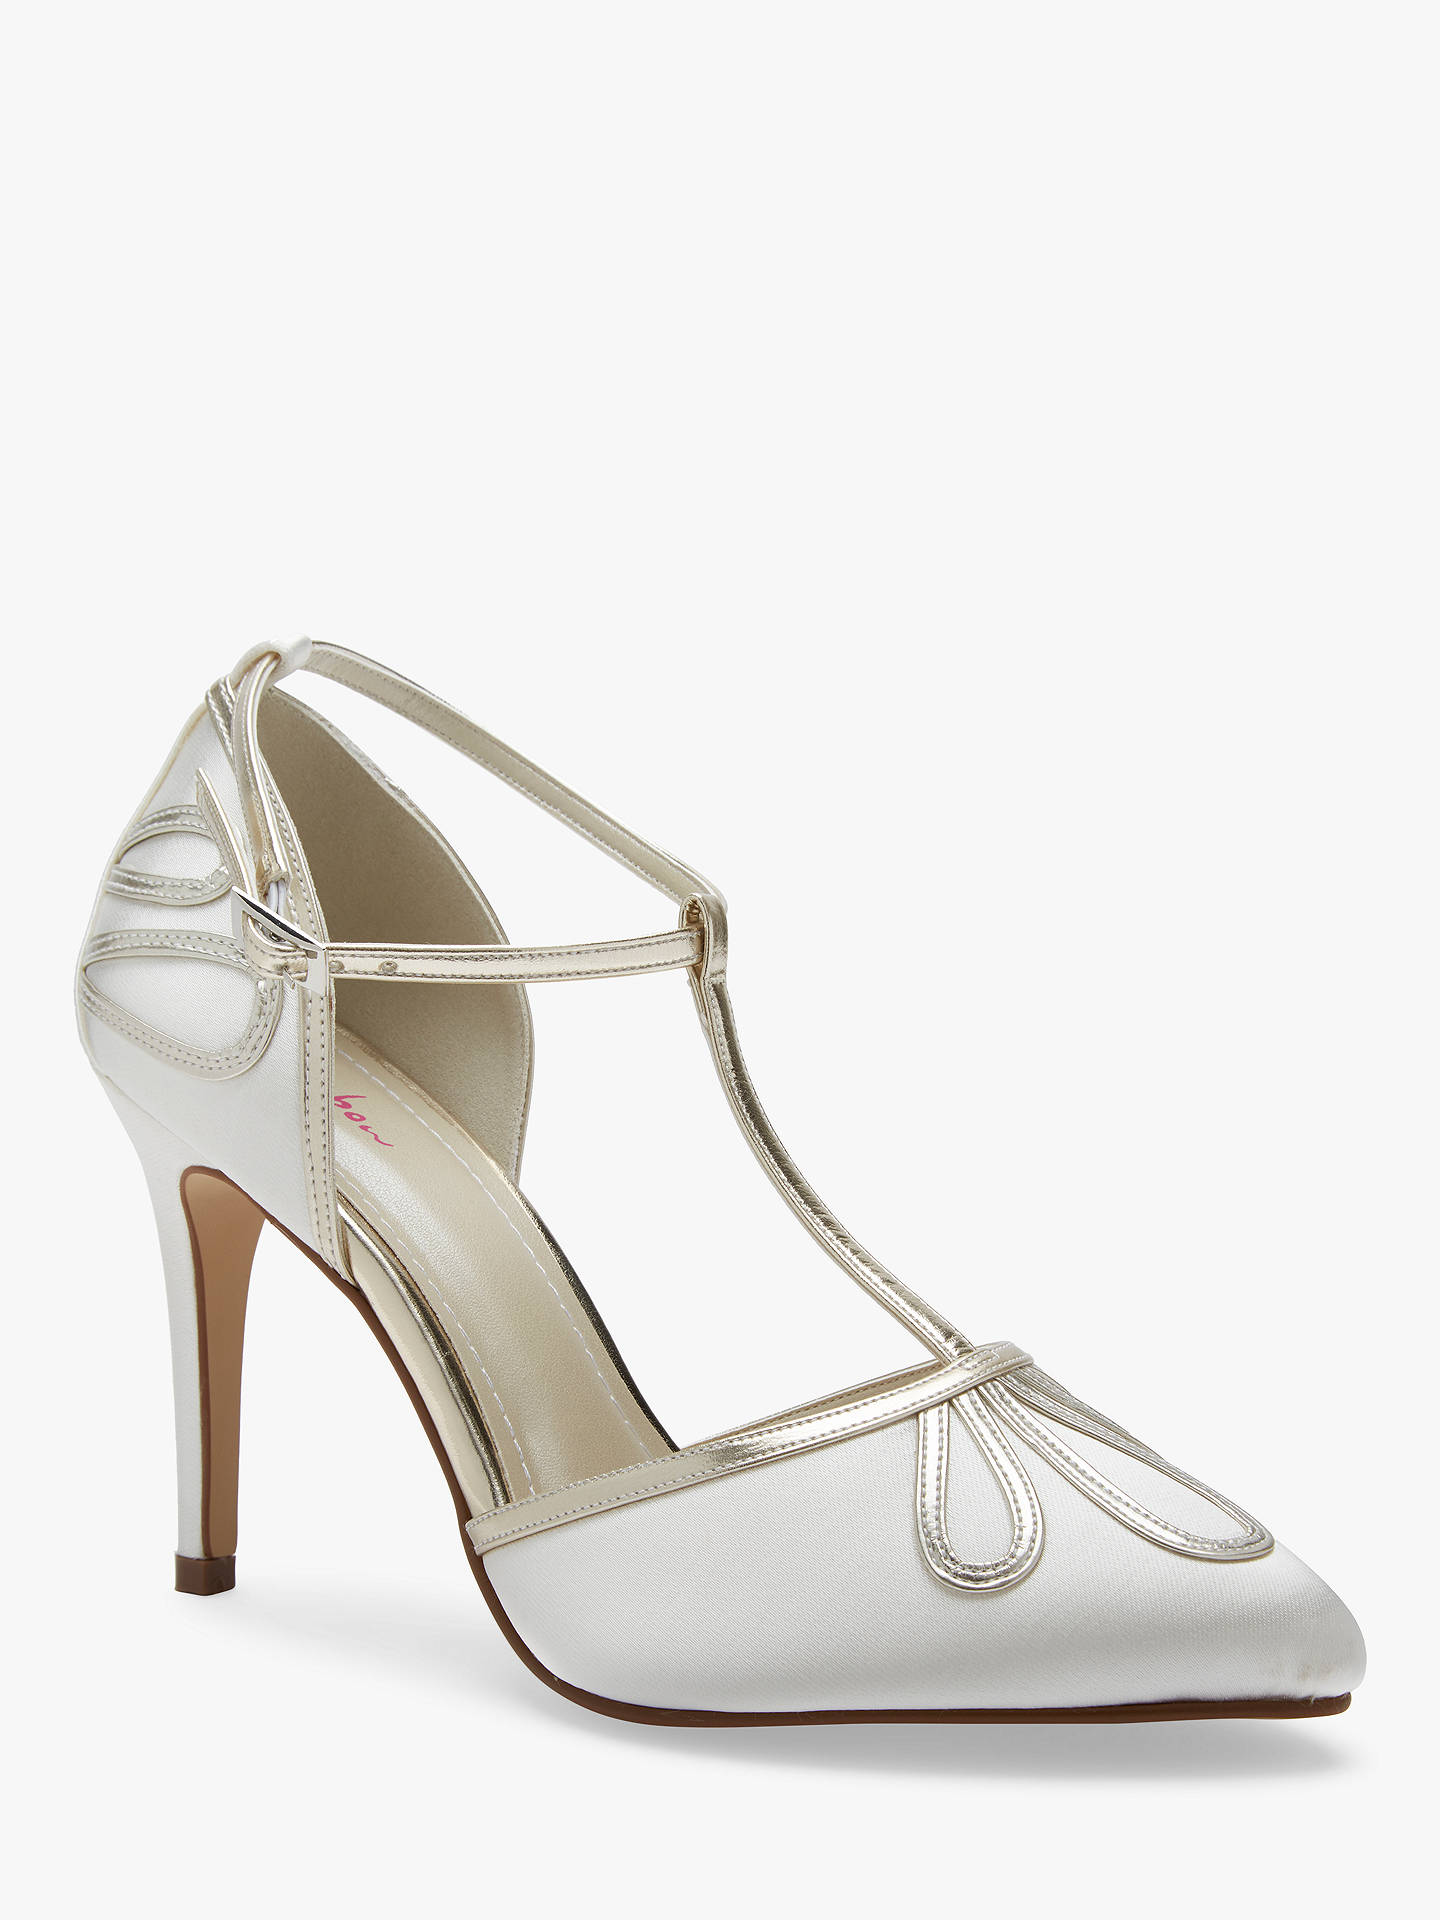 BuyRainbow Club Elspeth Stiletto Heeled Sandals, Ivory Satin, 3 Online at johnlewis.com